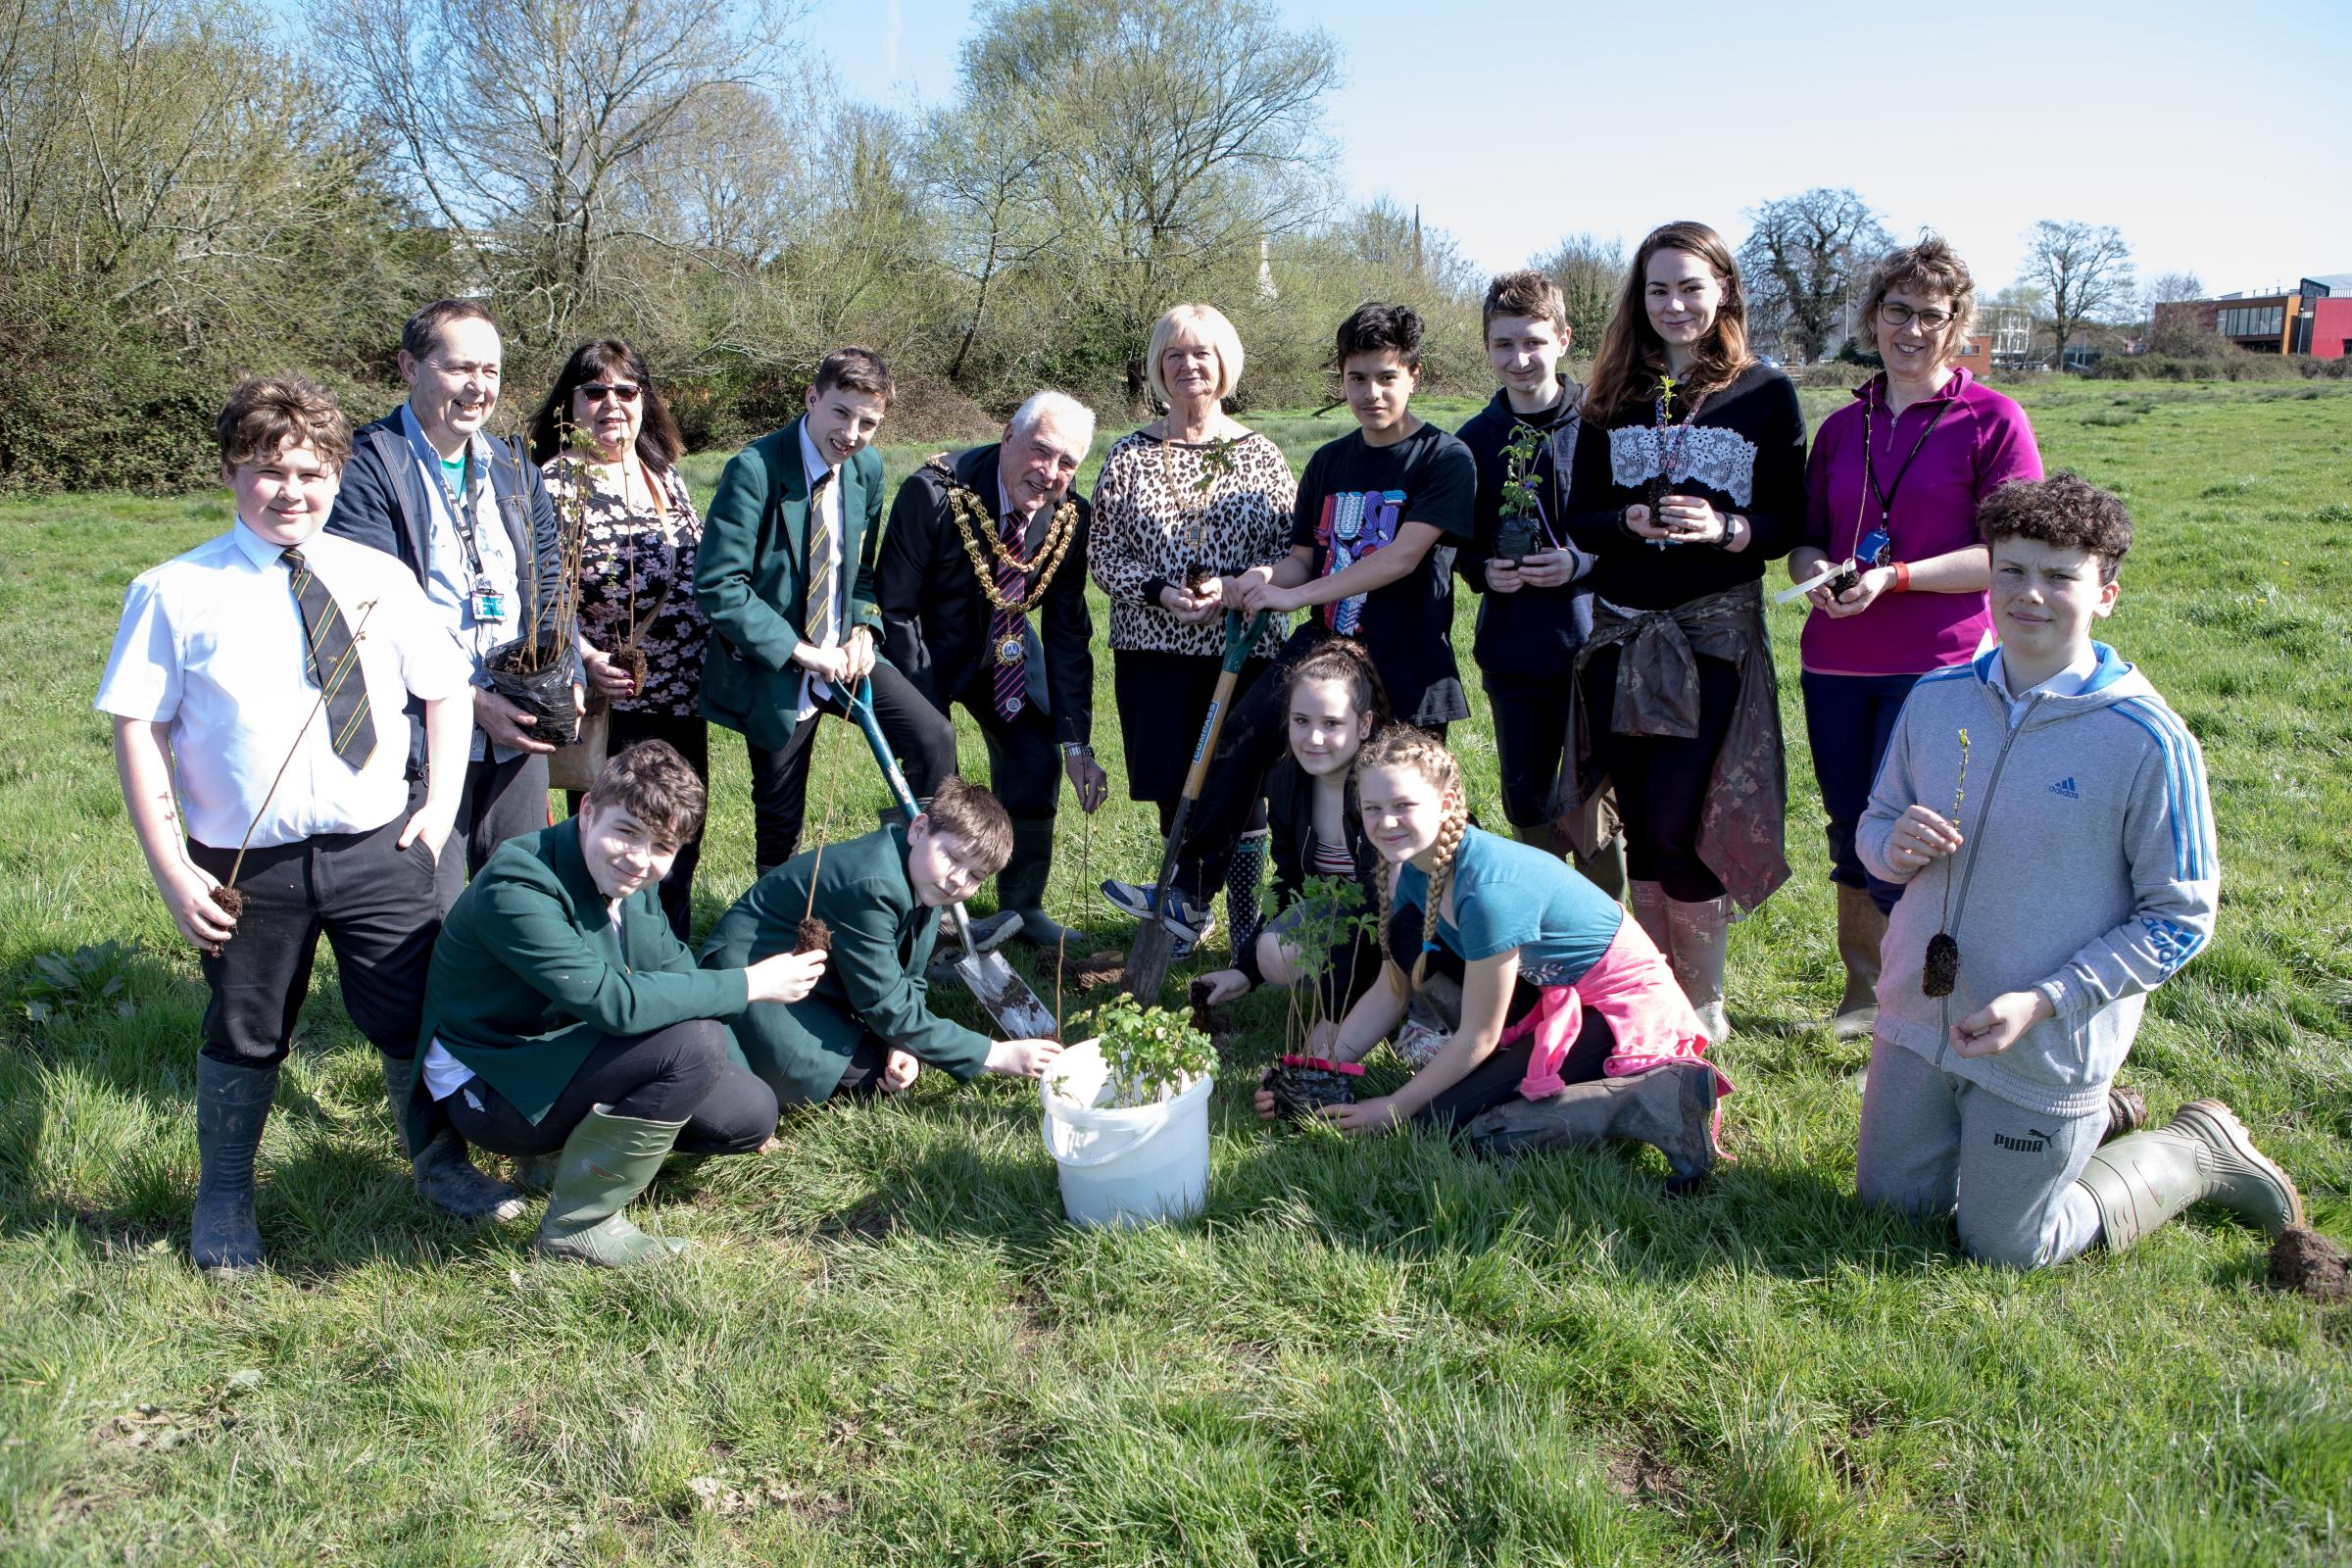 GOING GREEN: The mayor and mayoress join Robert Blake students for the tree planting ceremony (Picture by Les Pickersgill)